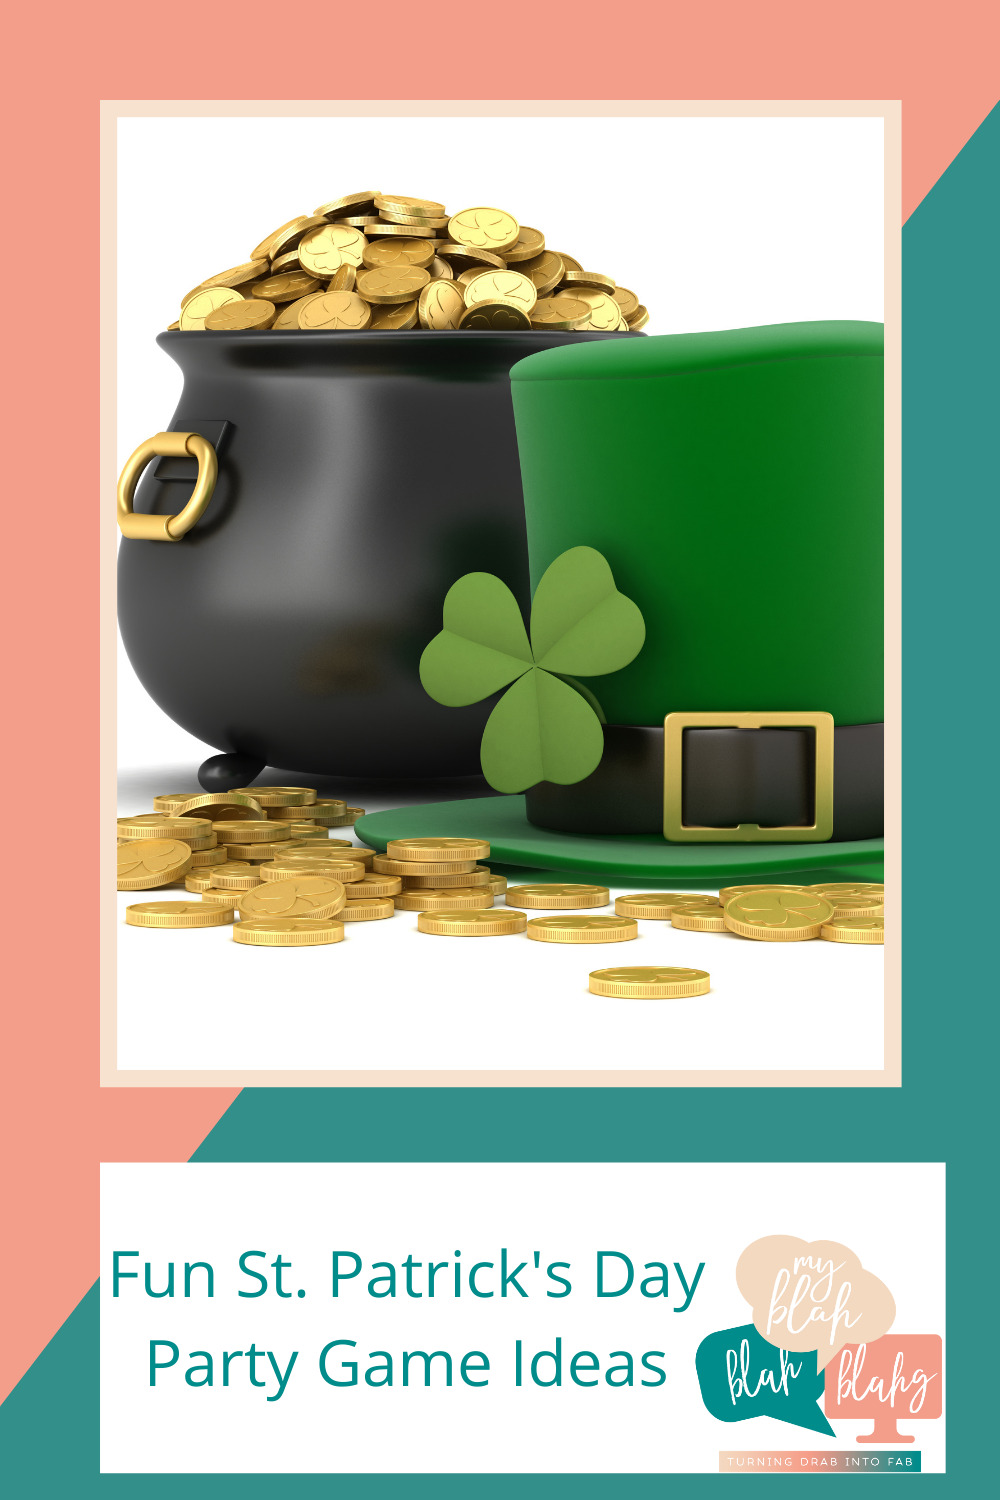 The luck of the Irish is with you thanks to Myblahblahblahg.com. That's right! Whether you are Irish or not, you are guaranteed to have a great St. Patrick's Day party with these game ideas.